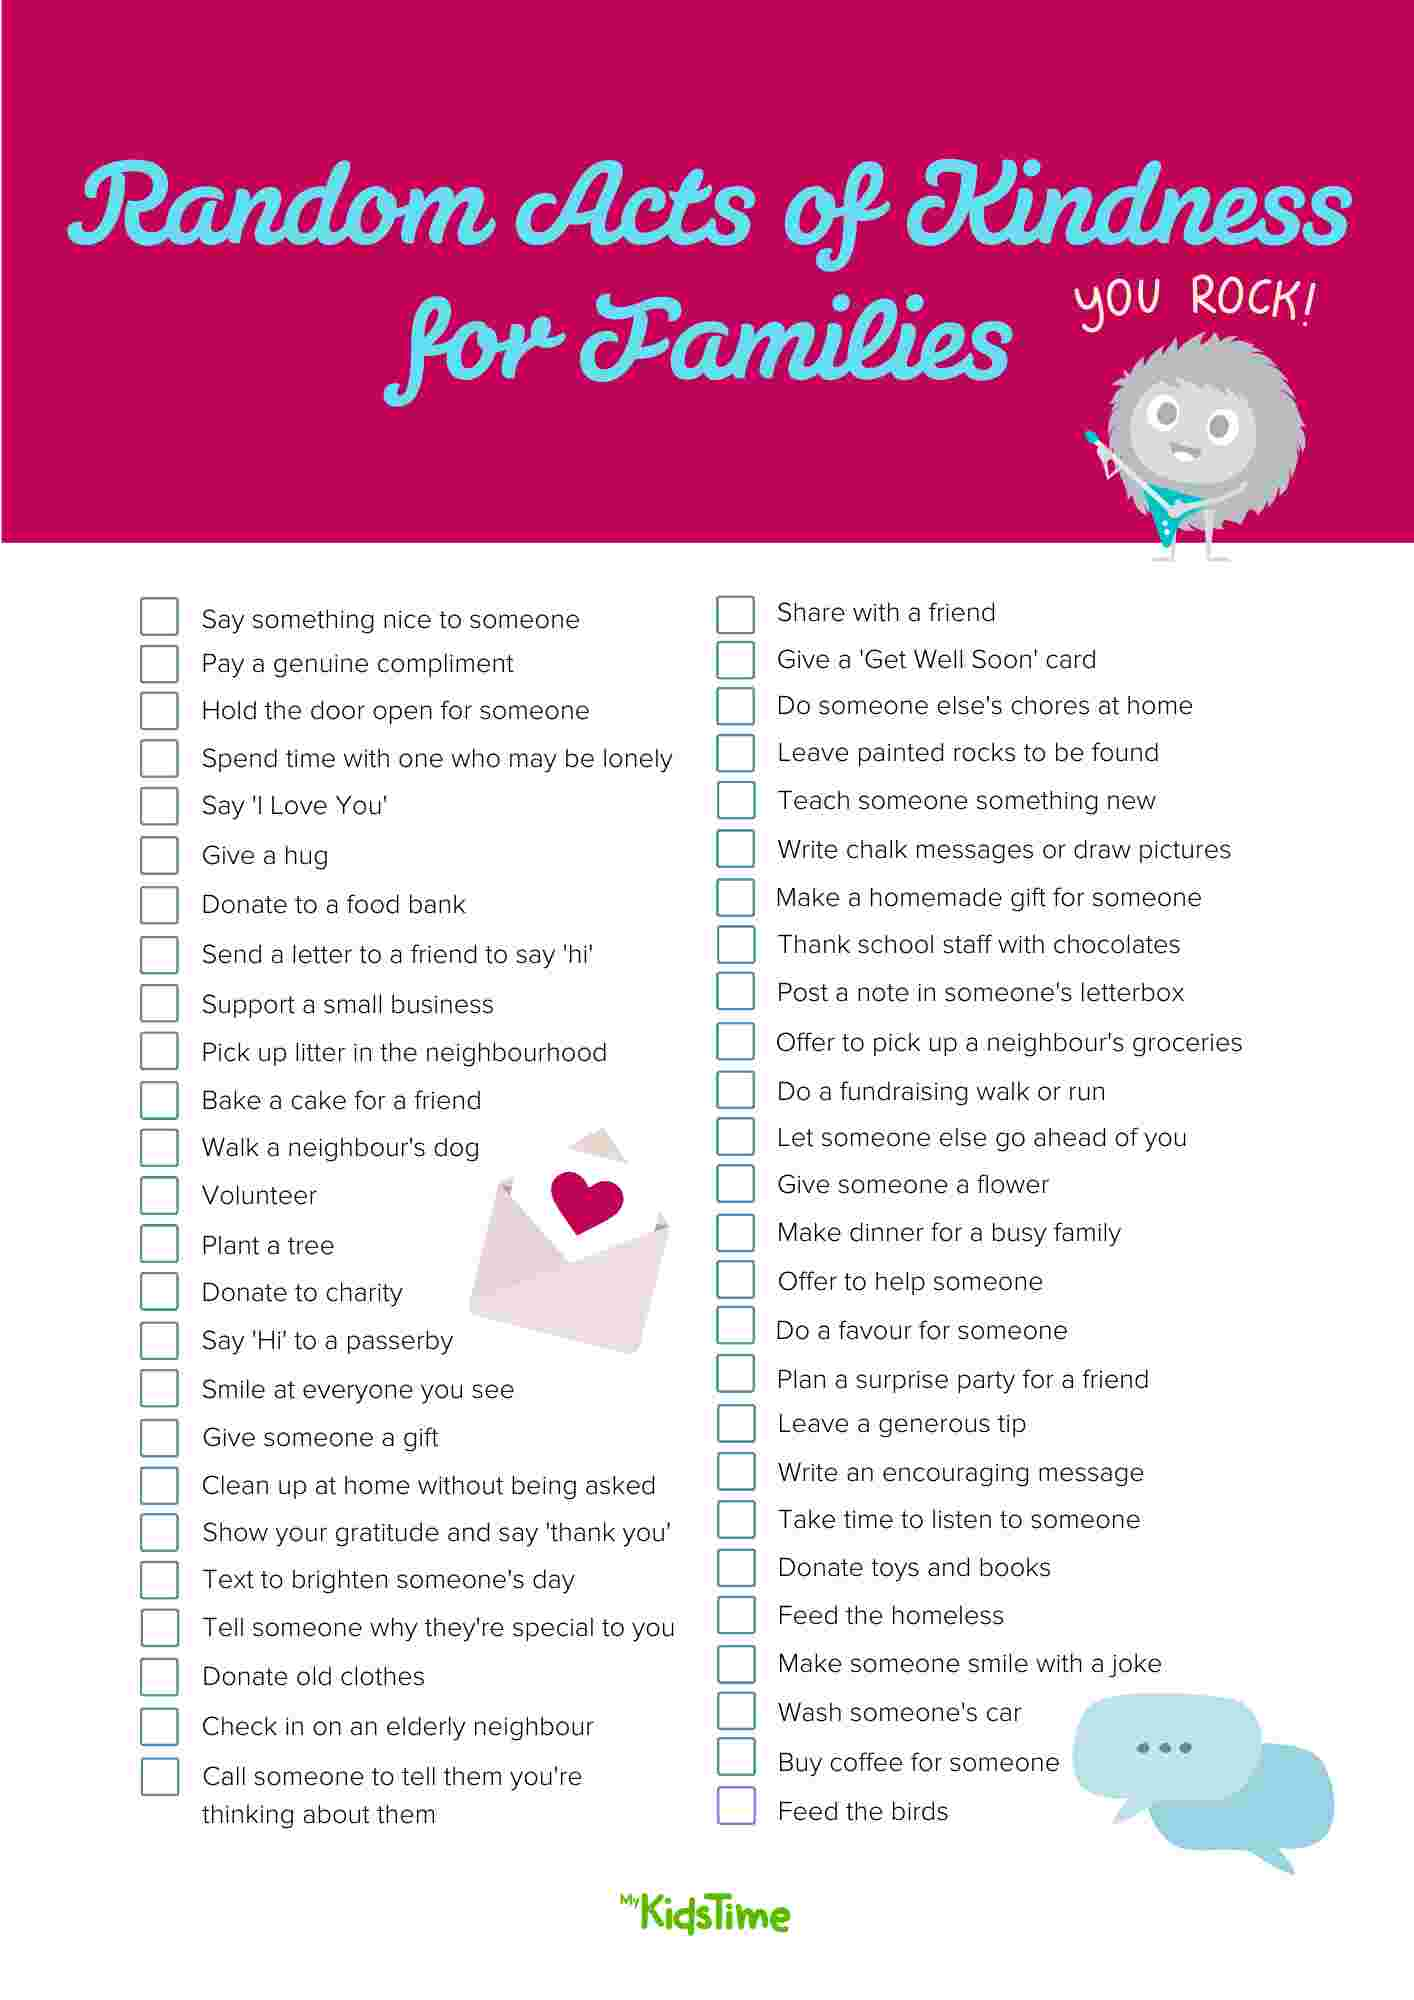 50+ Random Acts of Kindness for Families to Do Together - Mykidstime